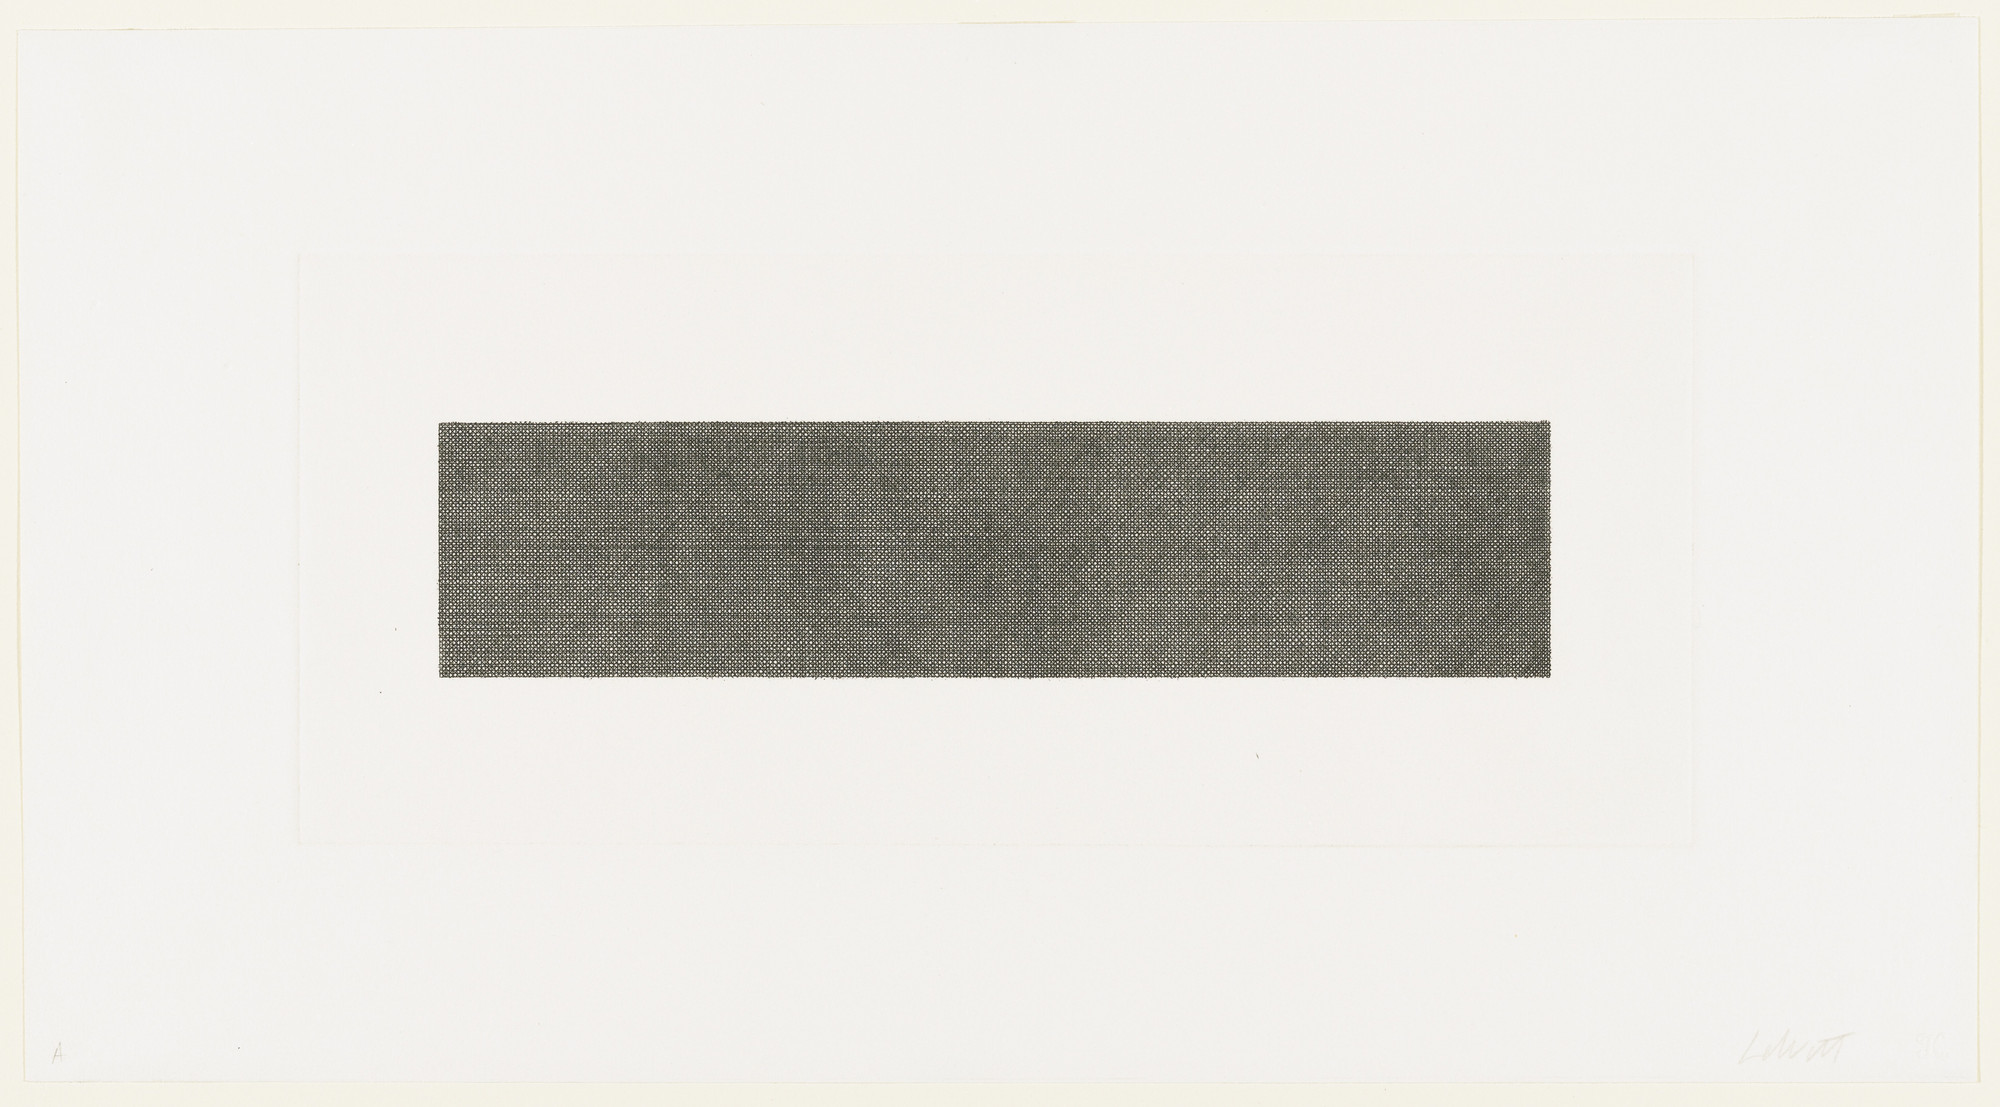 Sol LeWitt. Lines in Four Directions, Superimposed (Horizontal). 1971